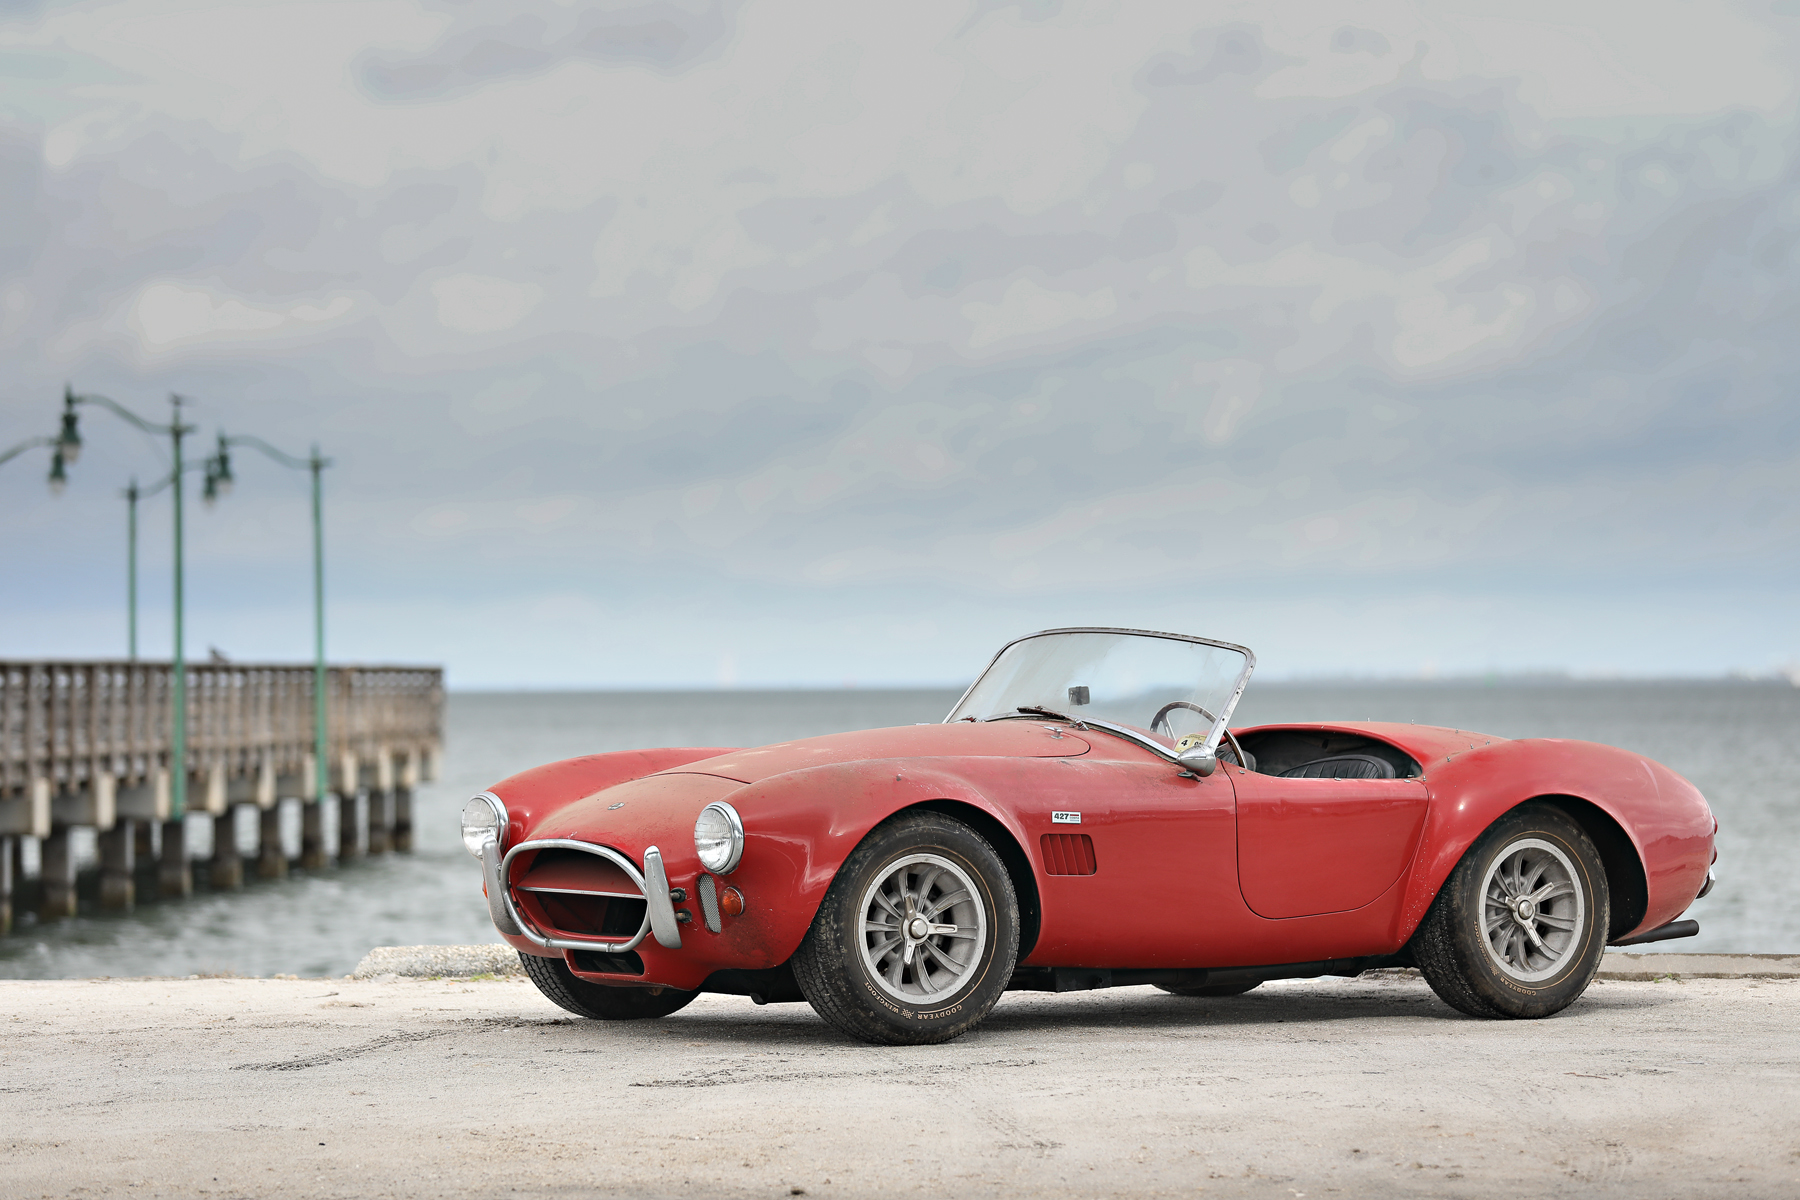 1966 Shelby Cobra 427 profile